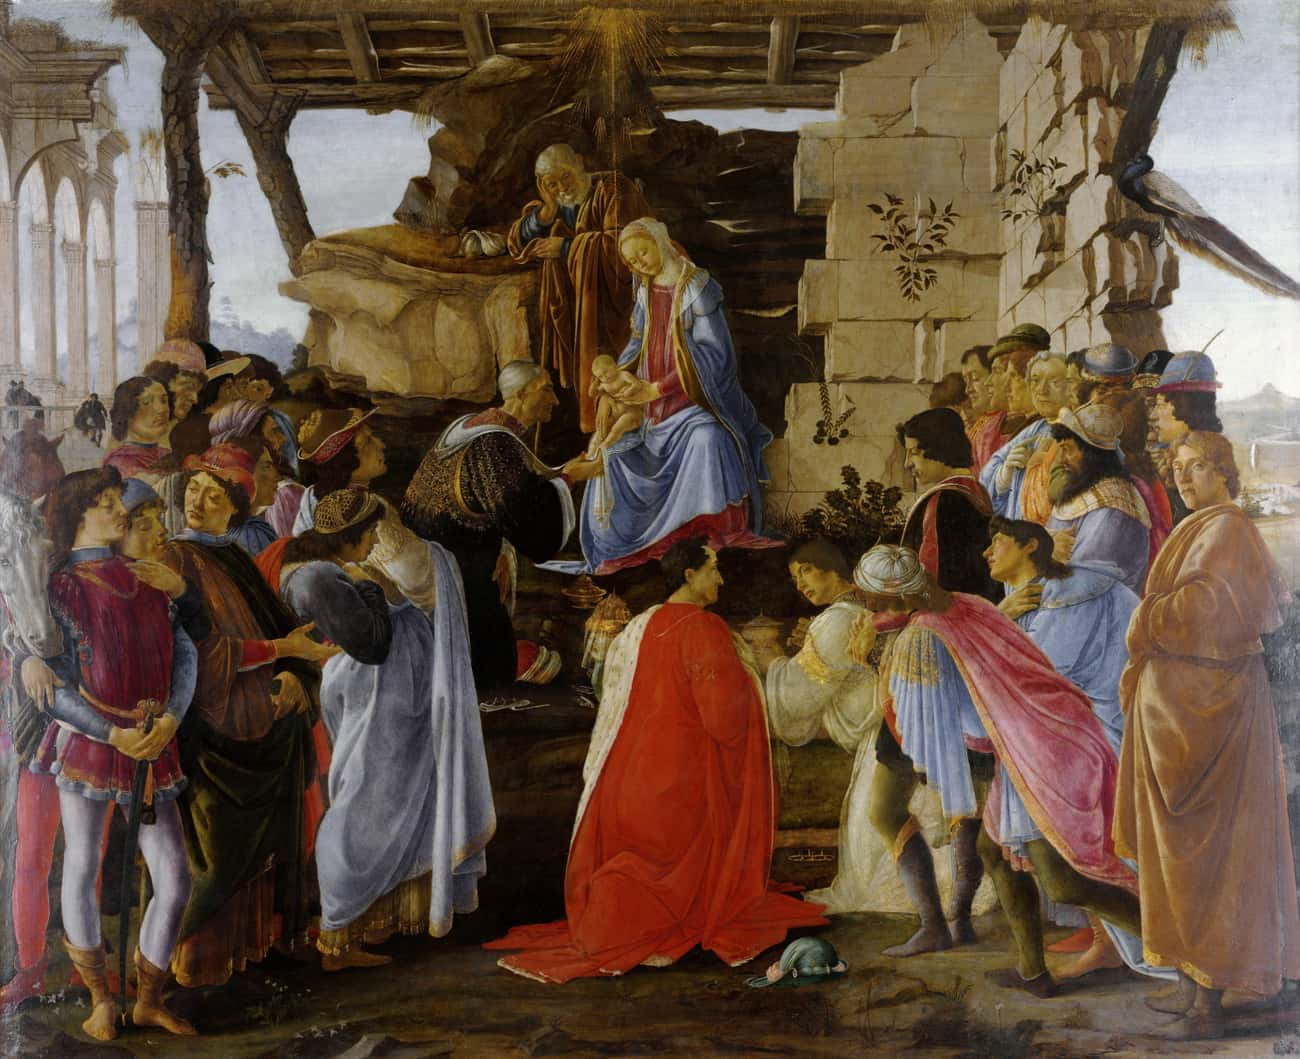 Adoration of the Magi of 1475